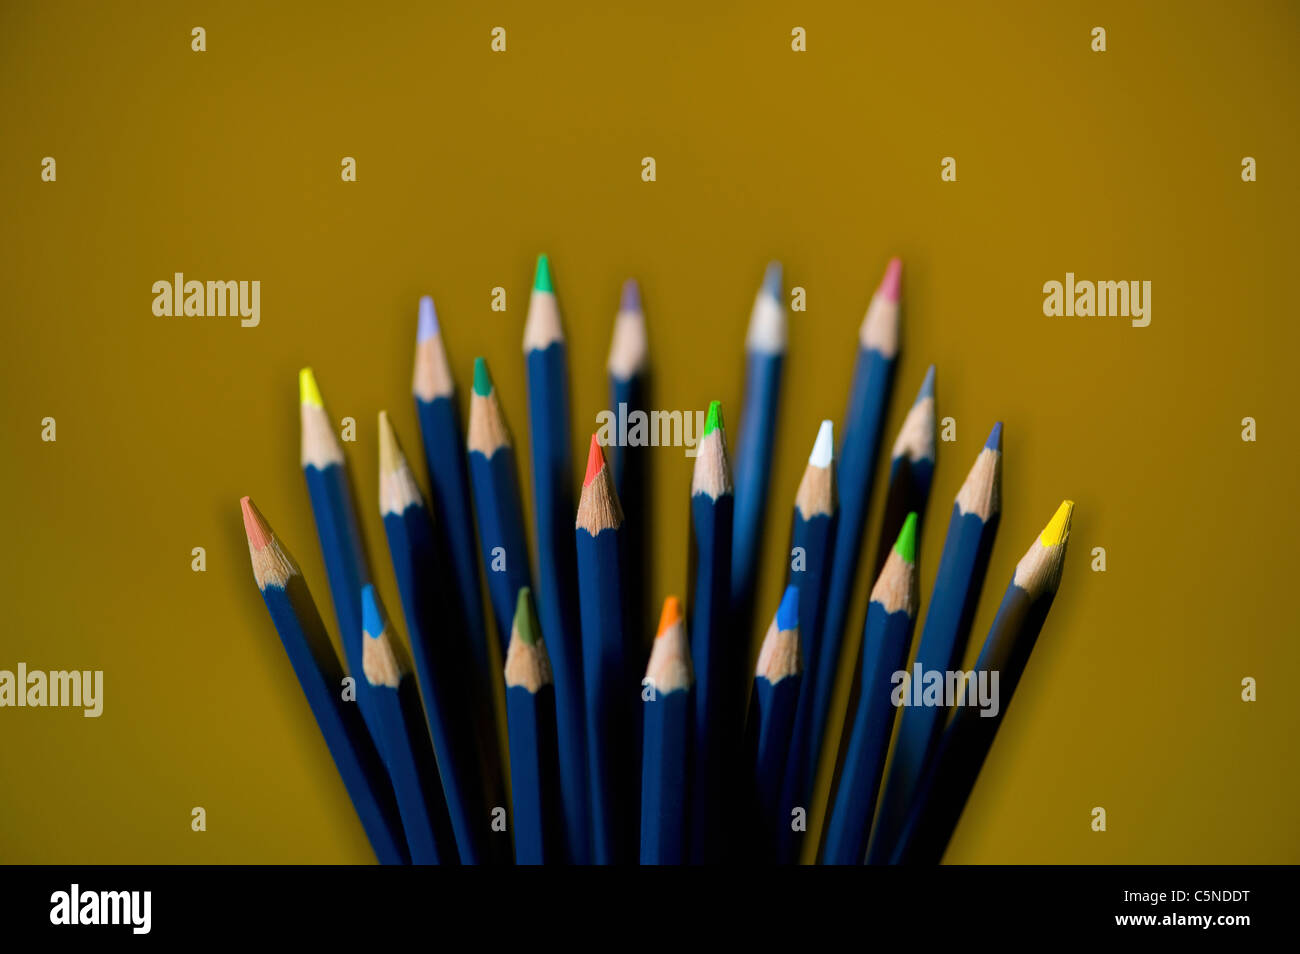 A selection of coloured pencils - Stock Image